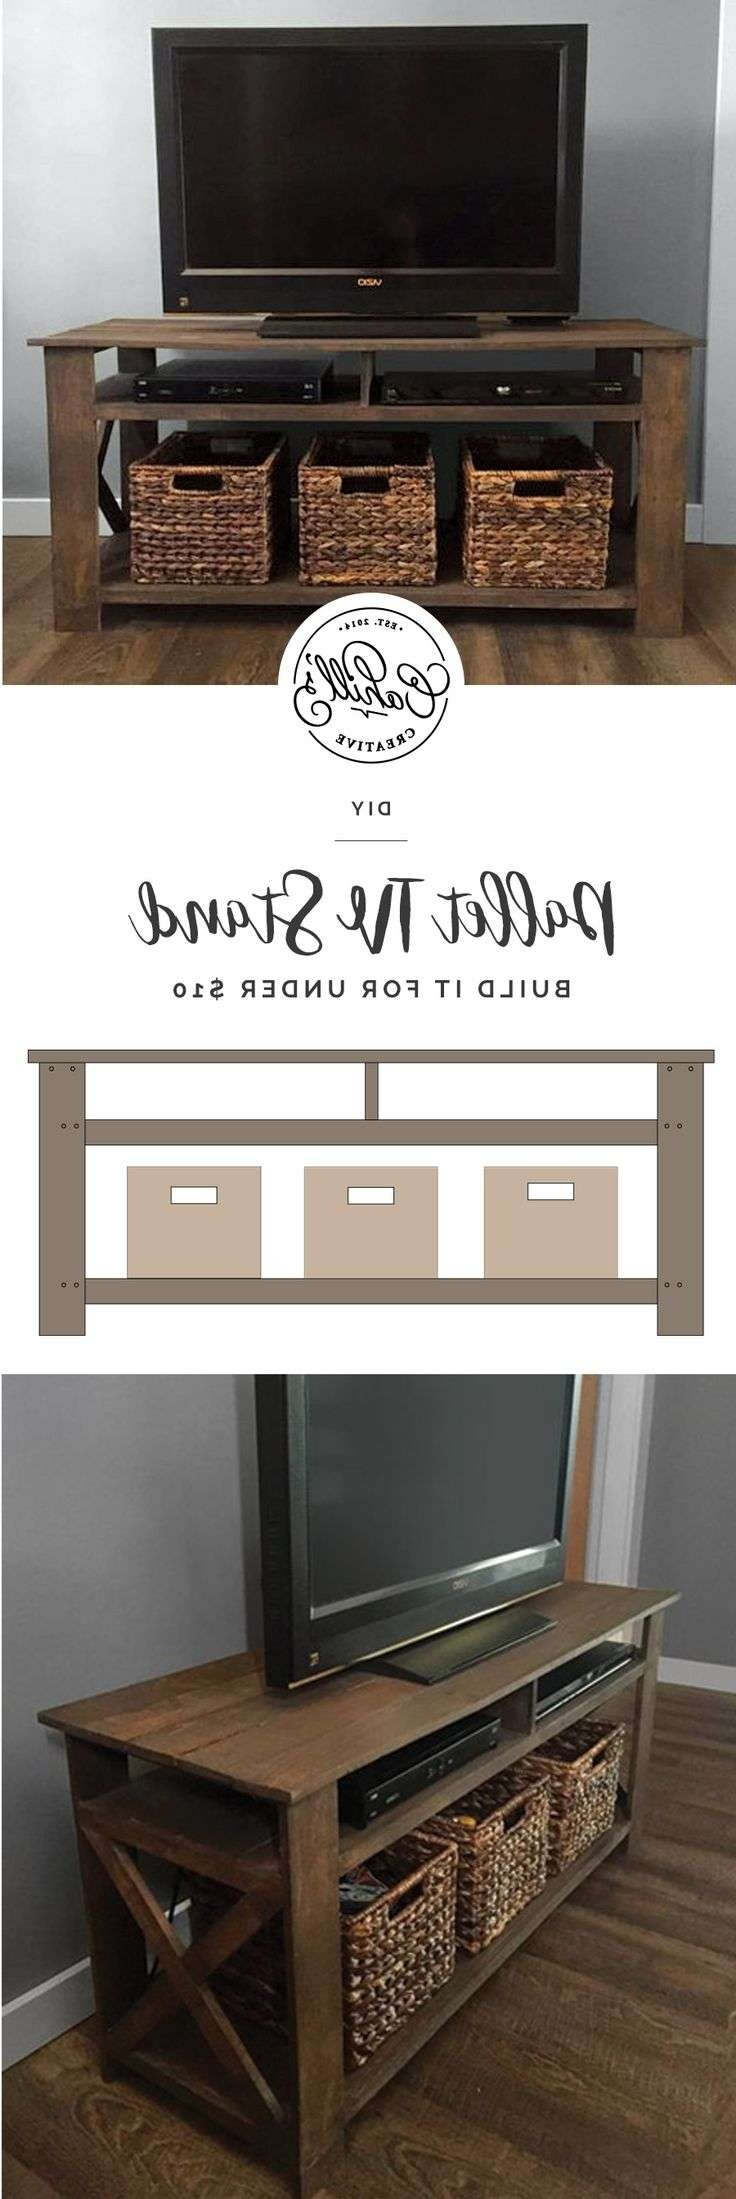 Best 25+ Tv Stands Ideas On Pinterest | Diy Tv Stand, Tv Stand Within Tv Stands 38 Inches Wide (View 4 of 15)